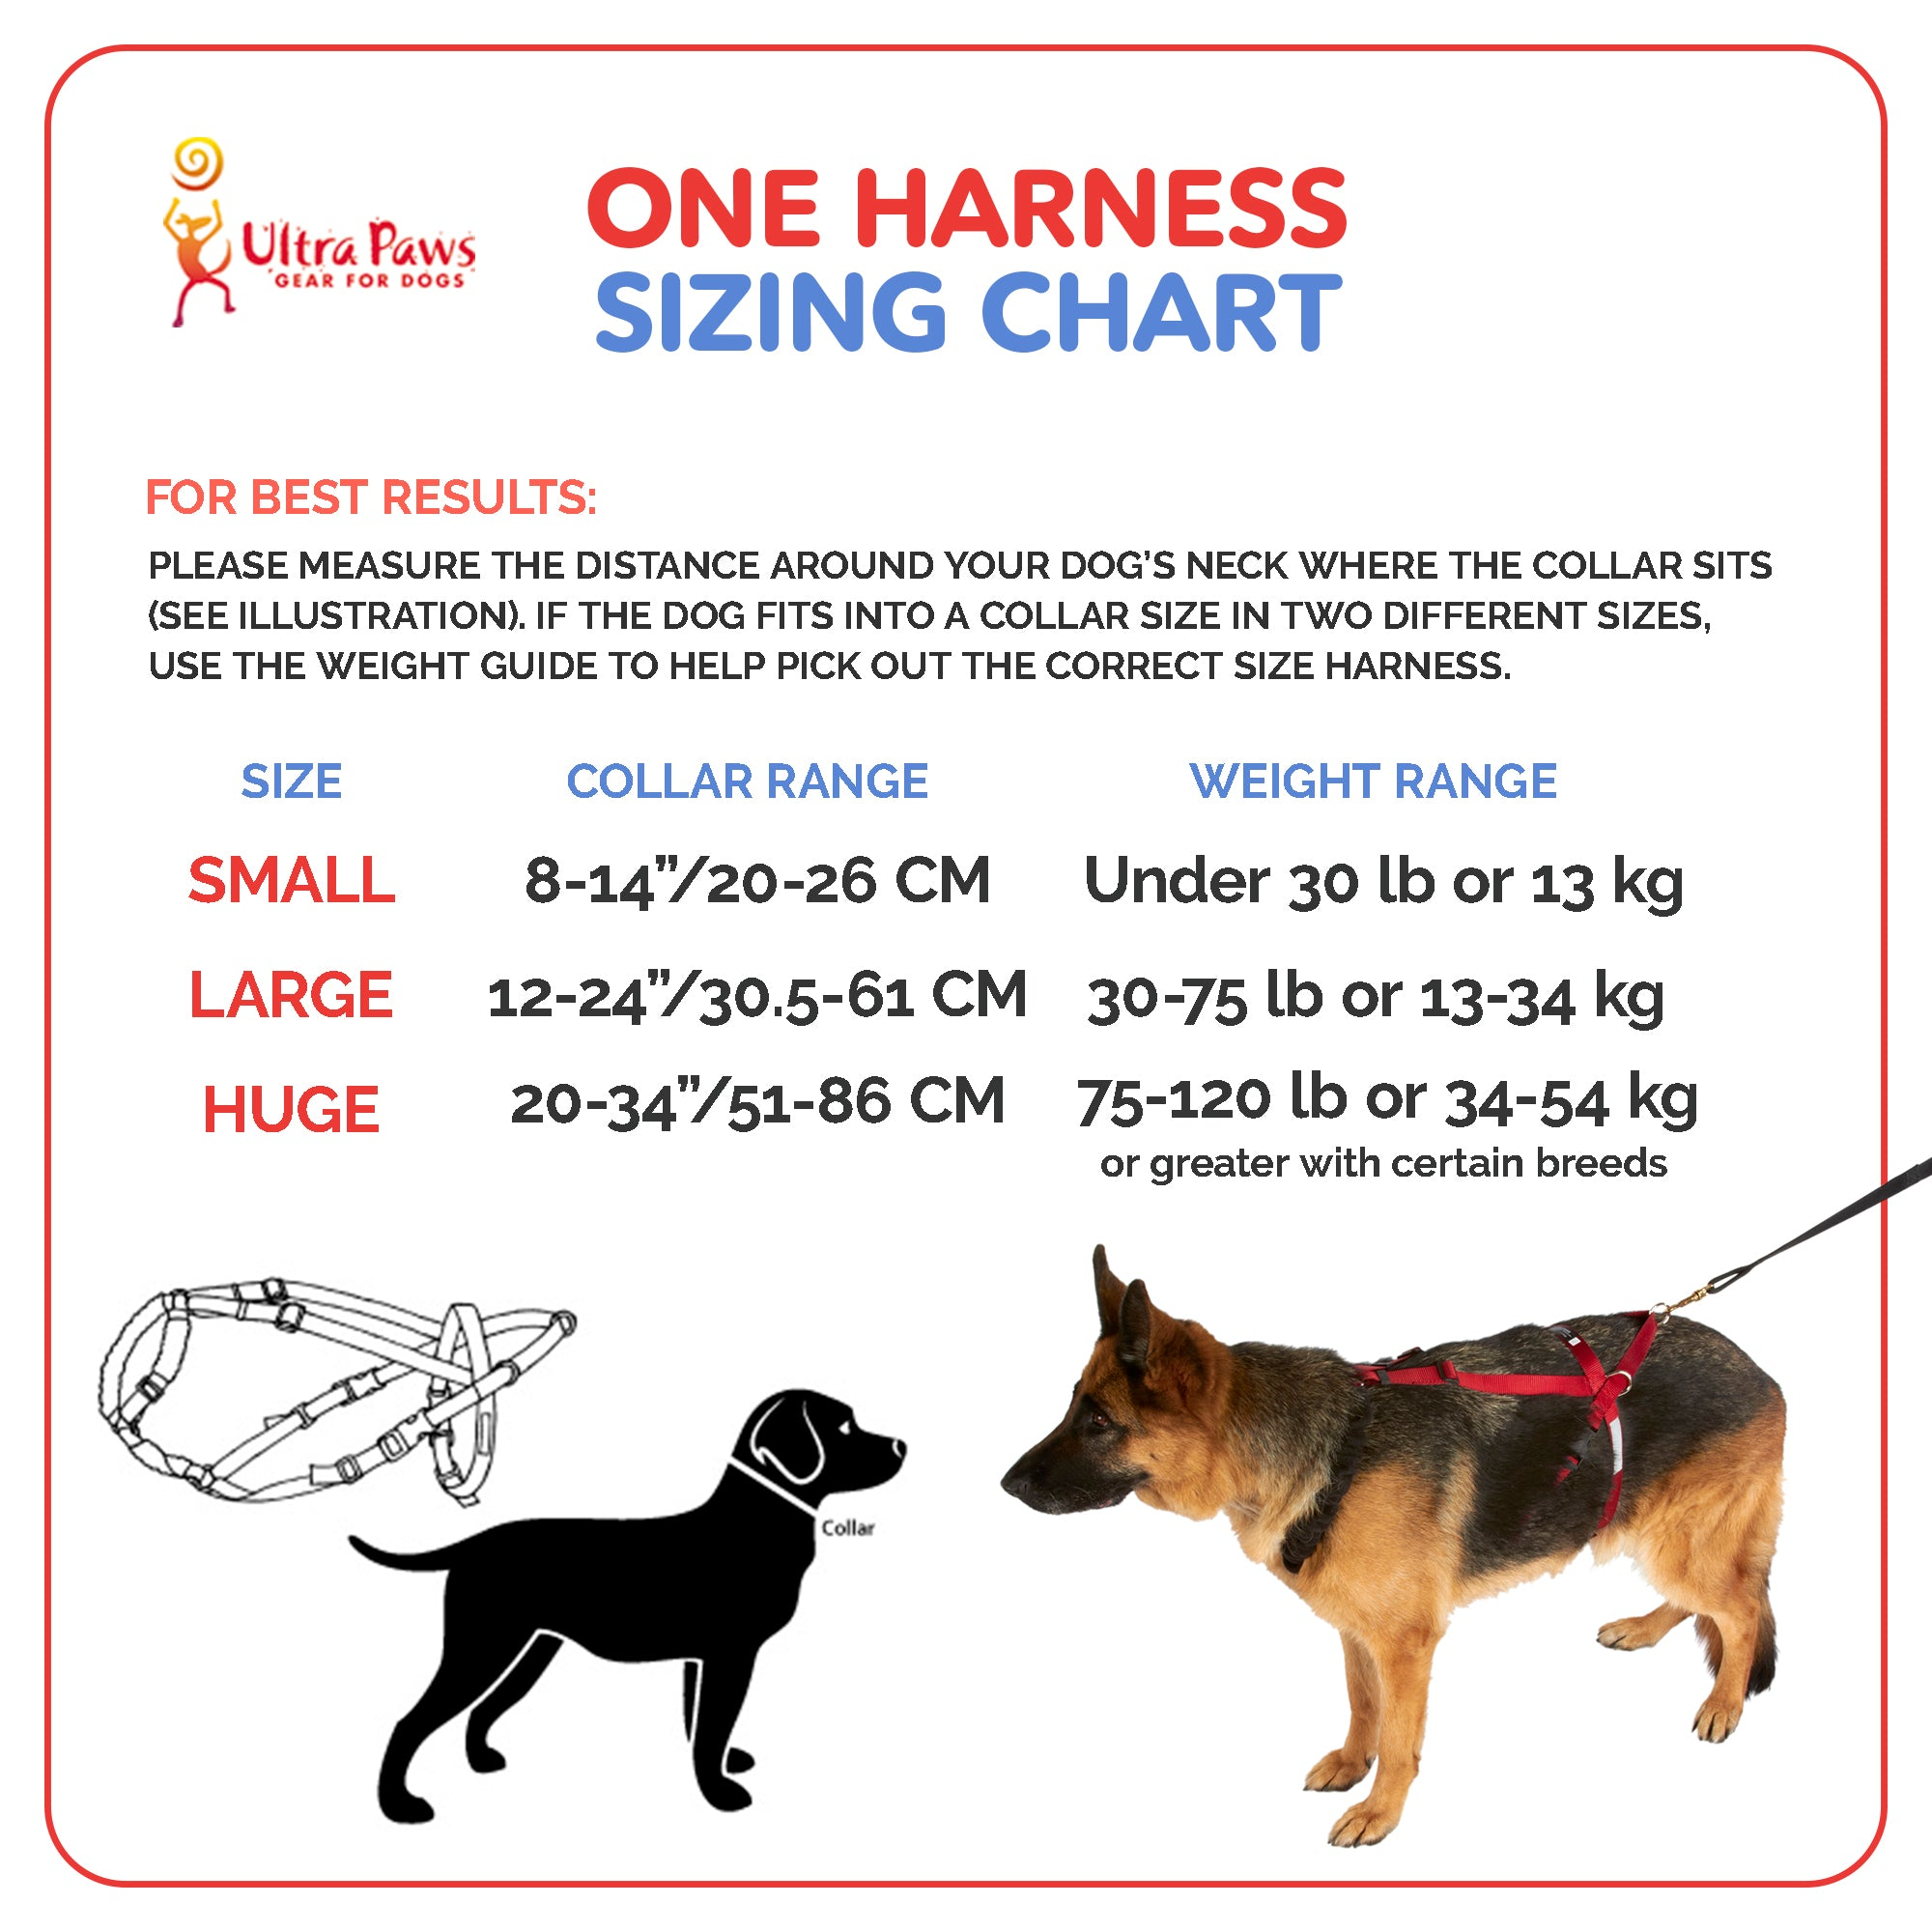 Ultra Paws One Harness Sizing Chart